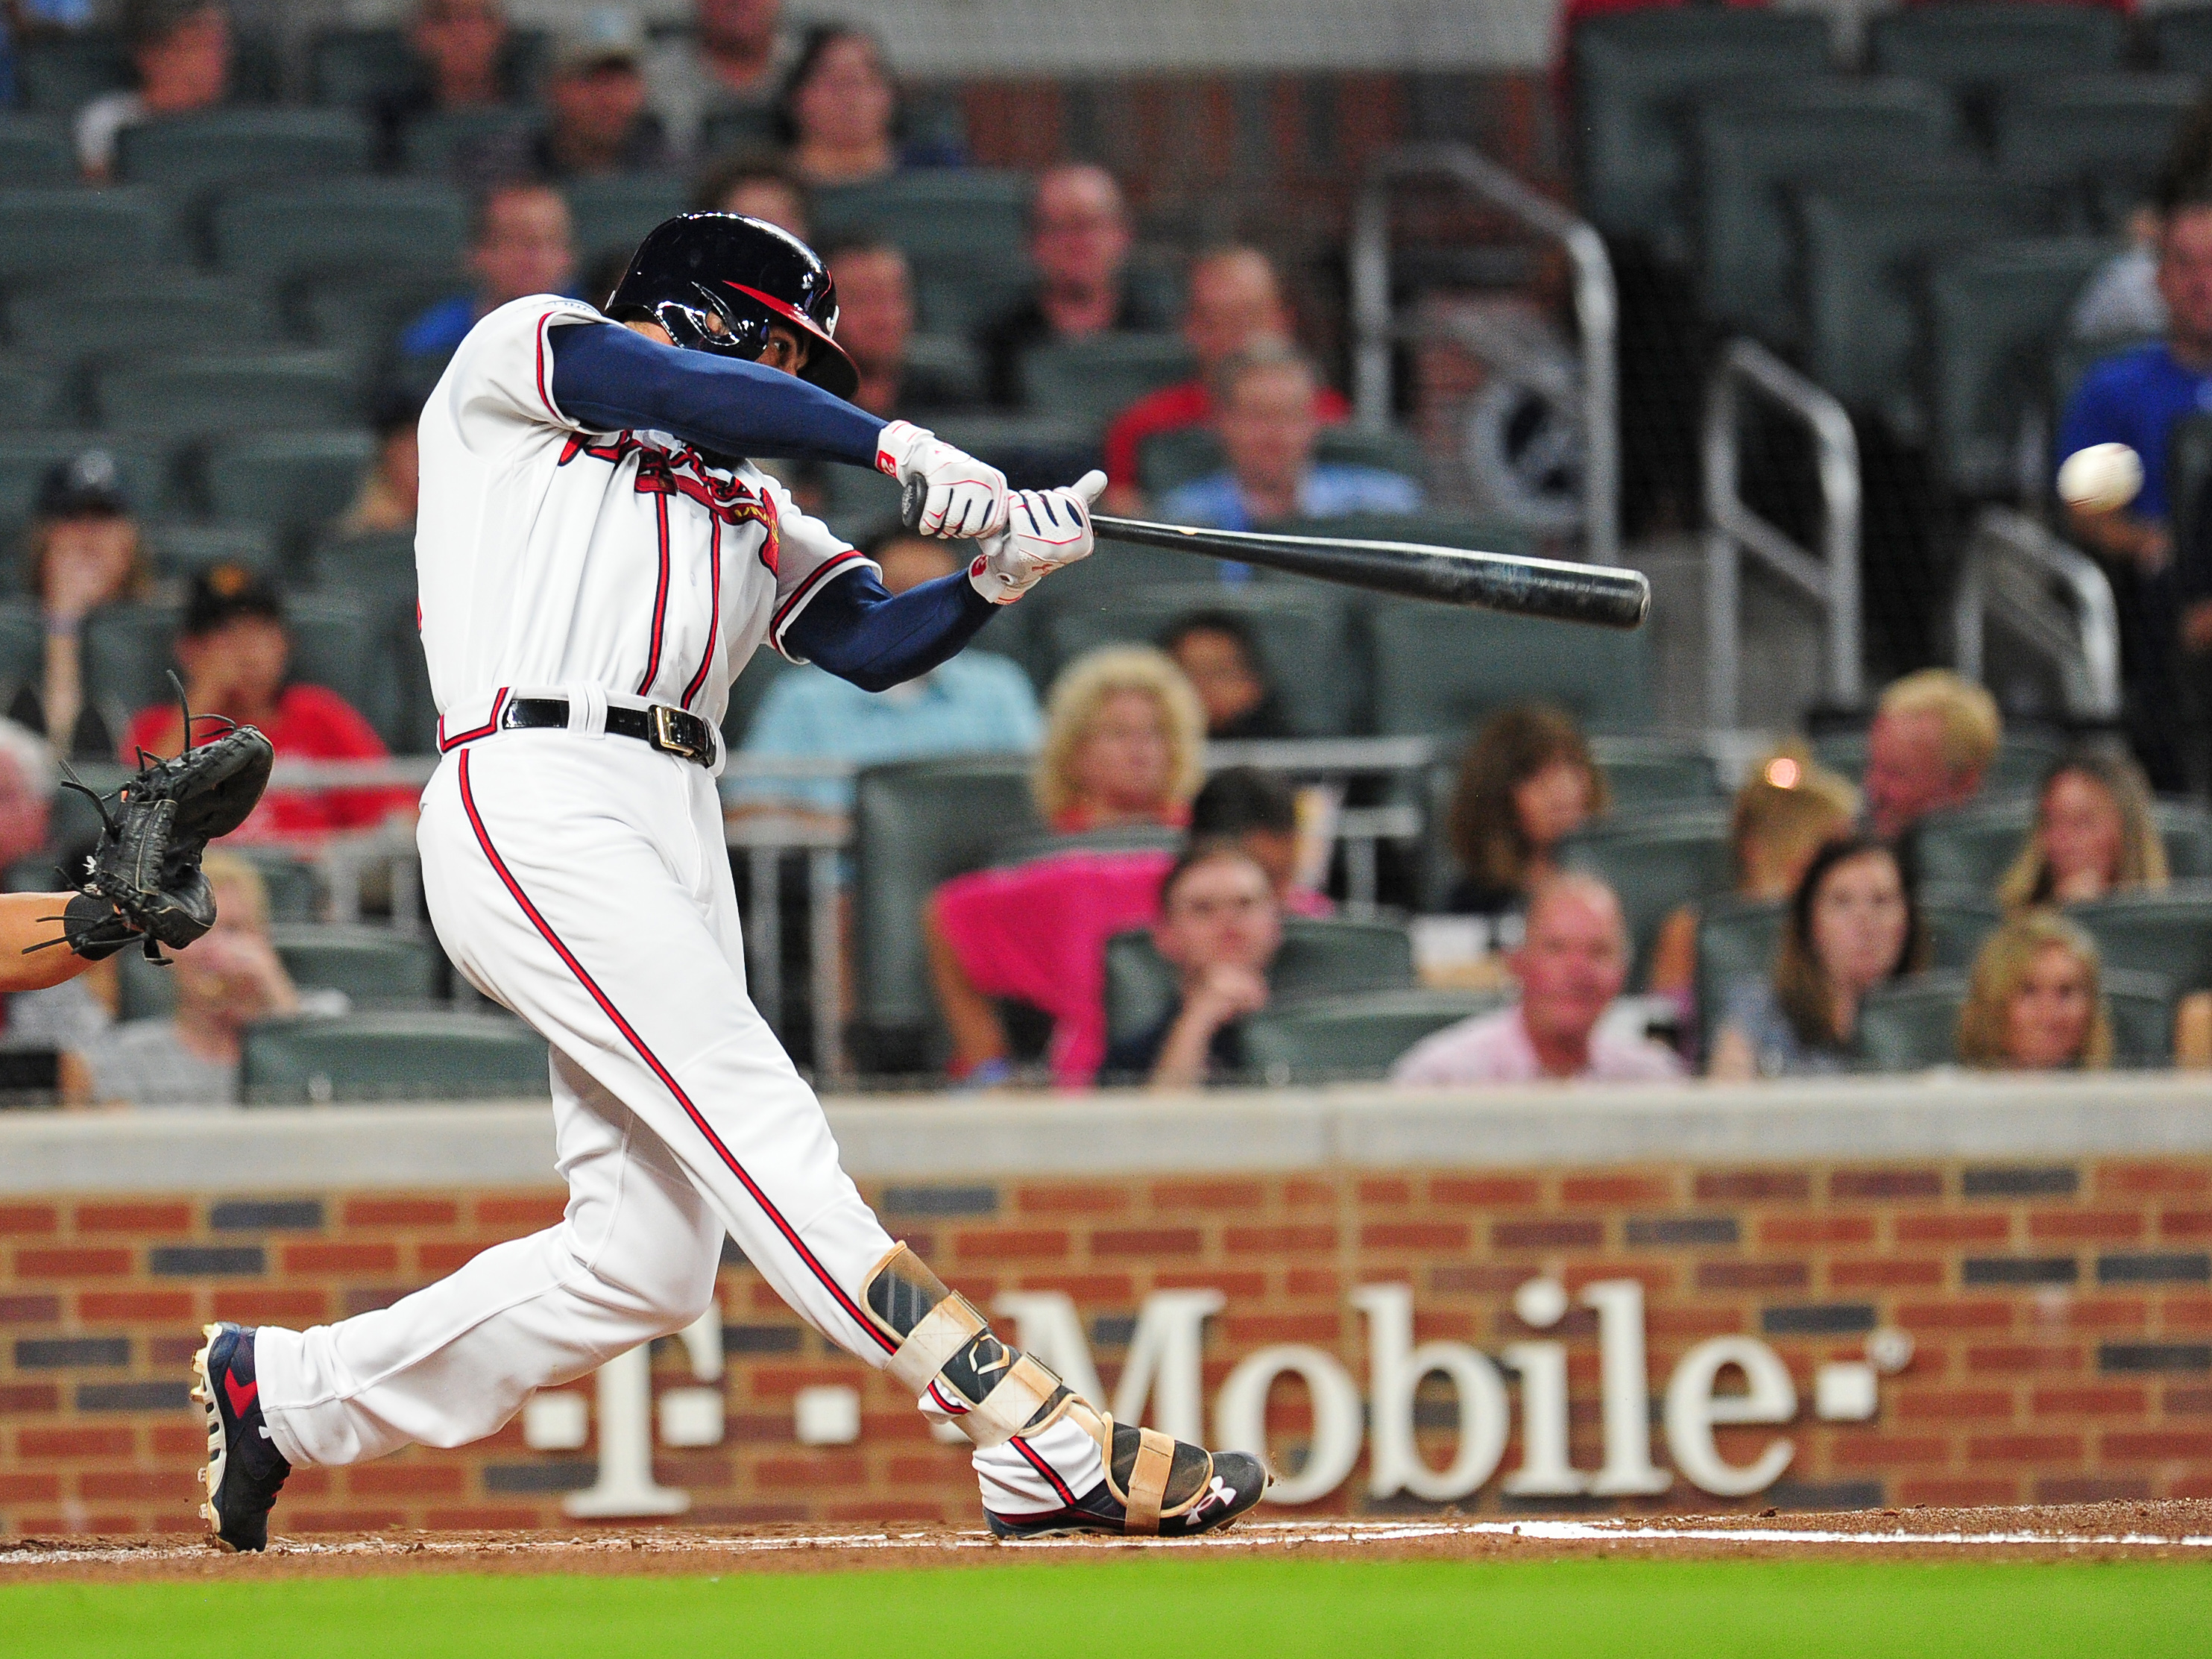 Major League Baseball hits Braves with severe sanctions for violating signing rules